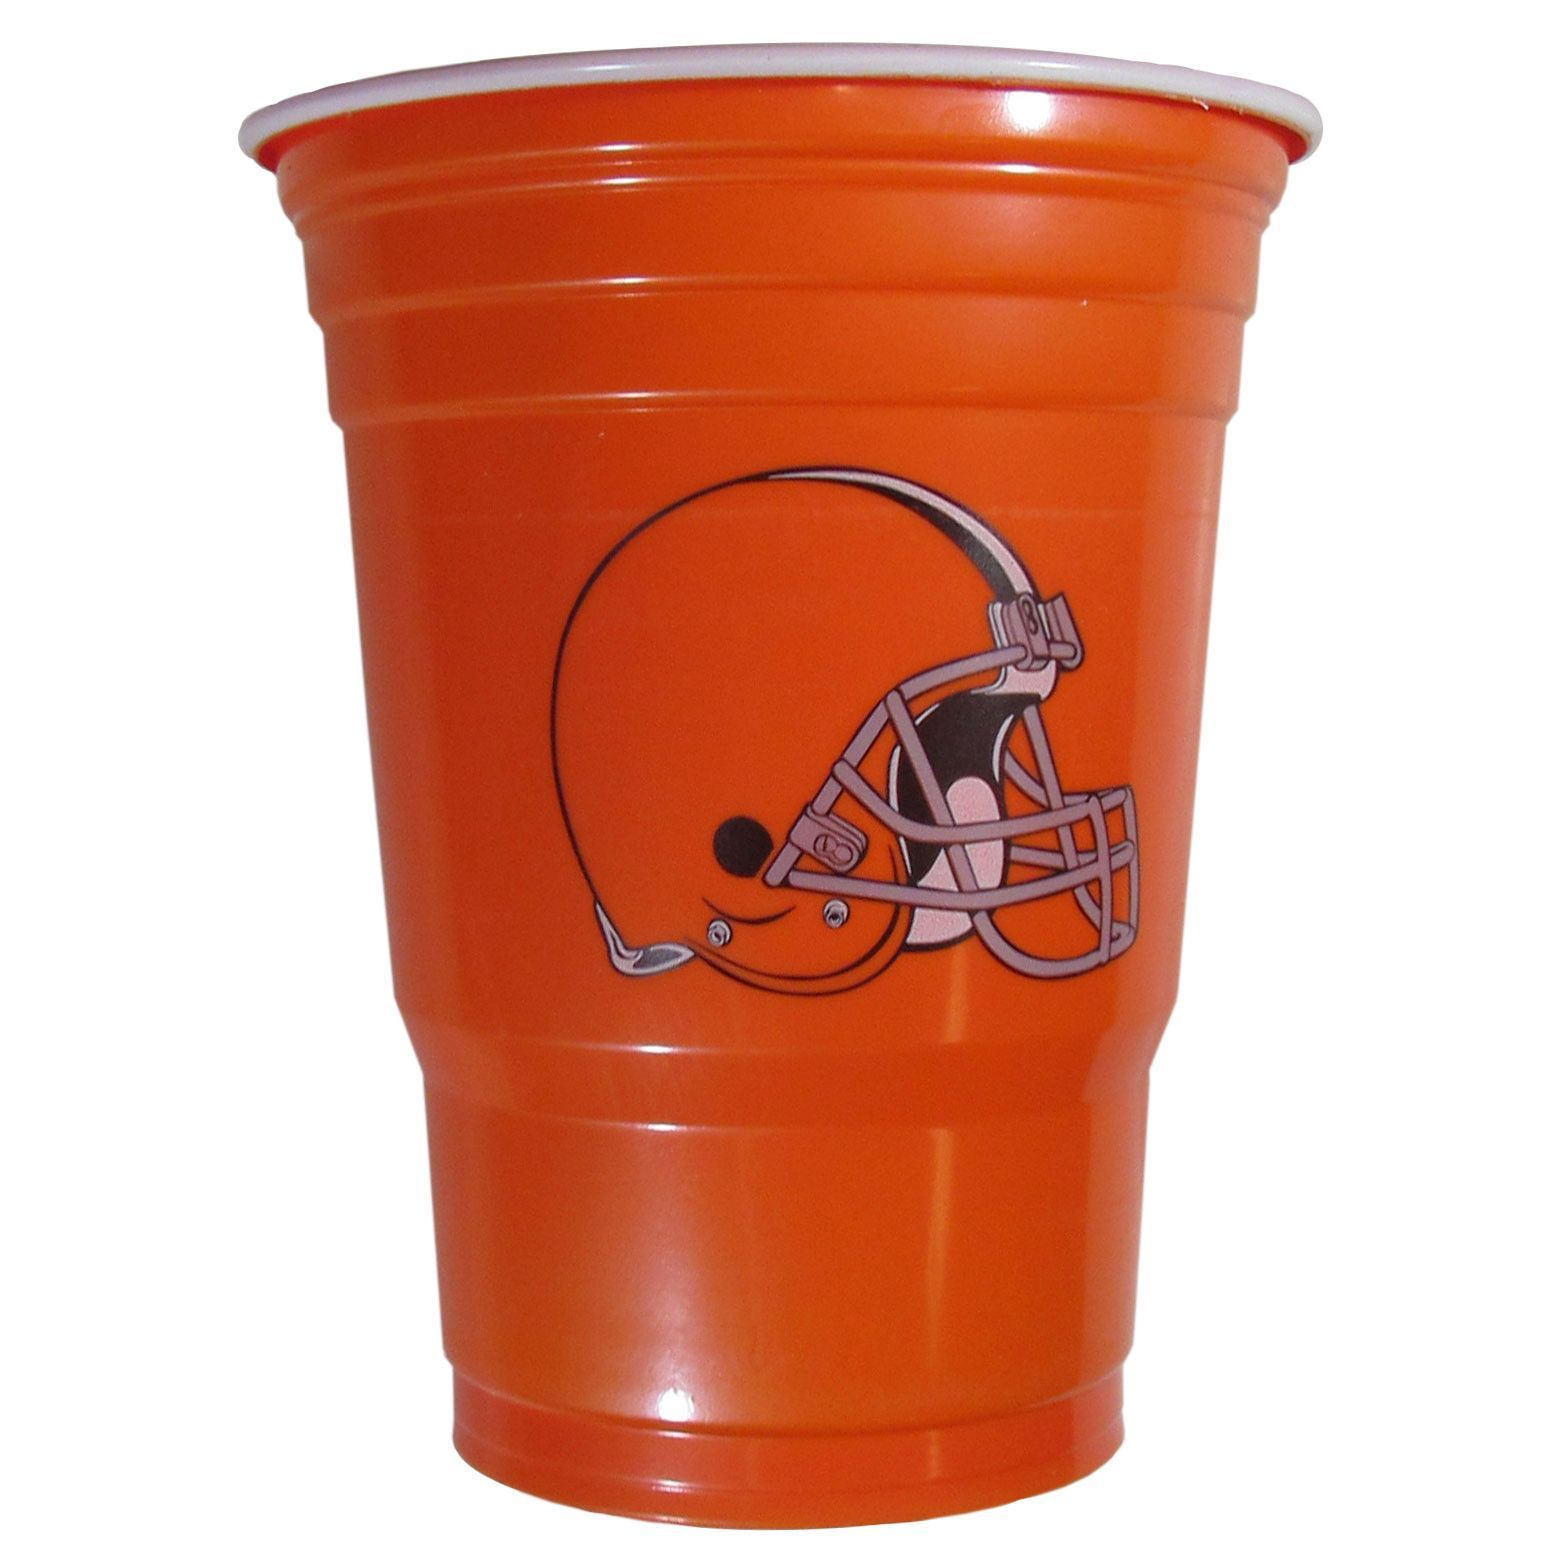 Cleveland Browns Plastic Game Day Cups Cleveland browns